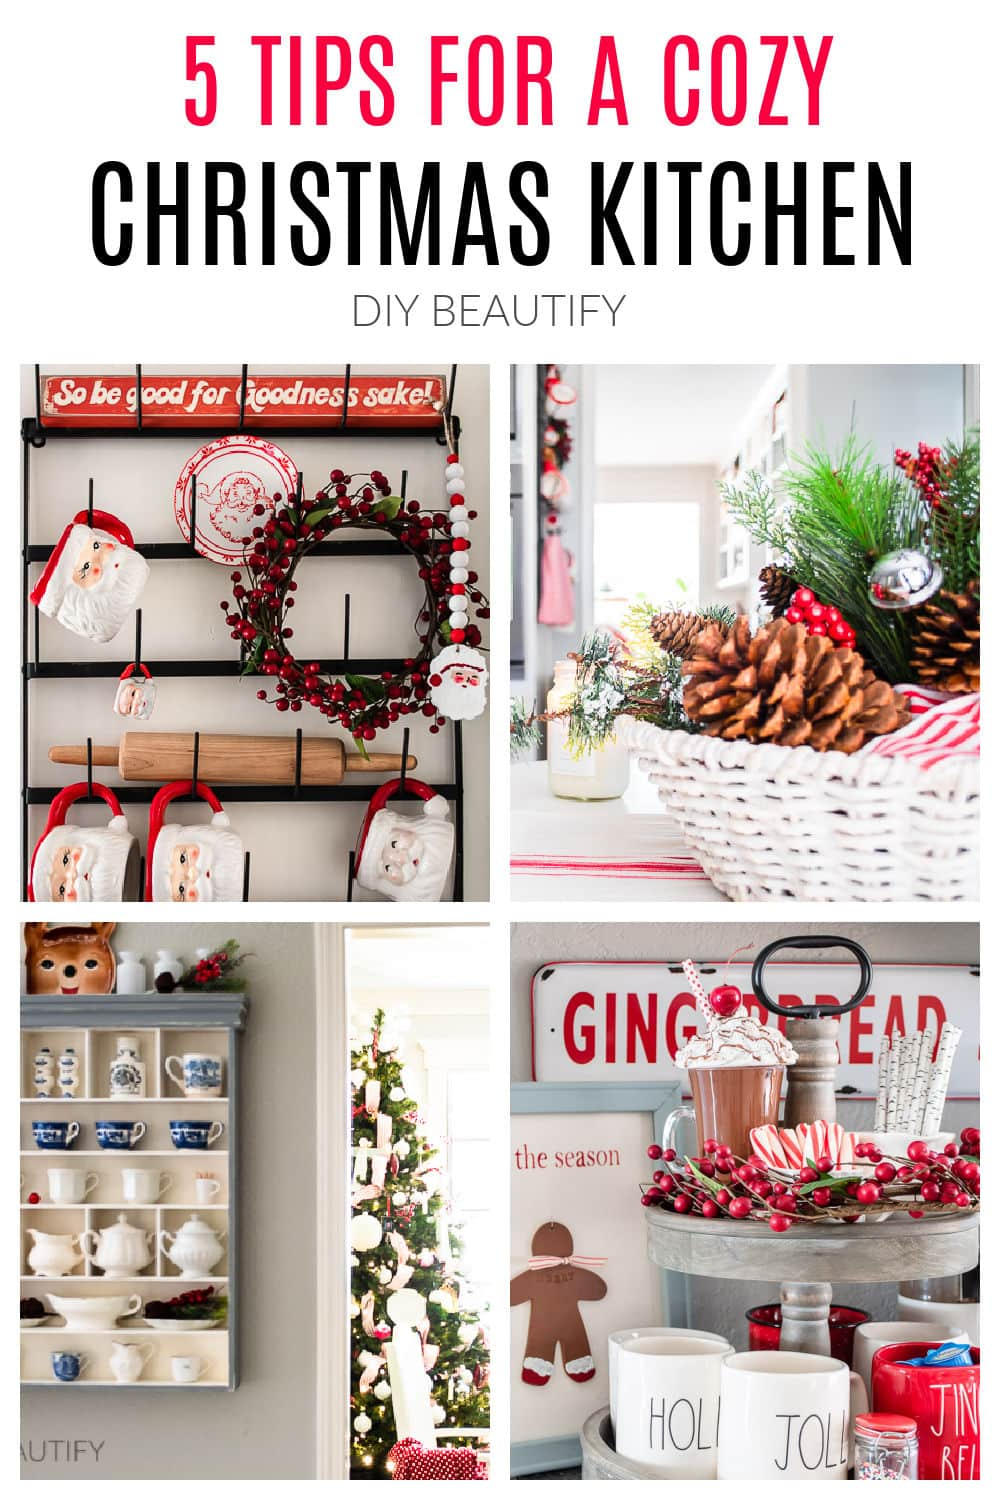 5 tips to a cozy Christmas kitchen by DIY Beautify